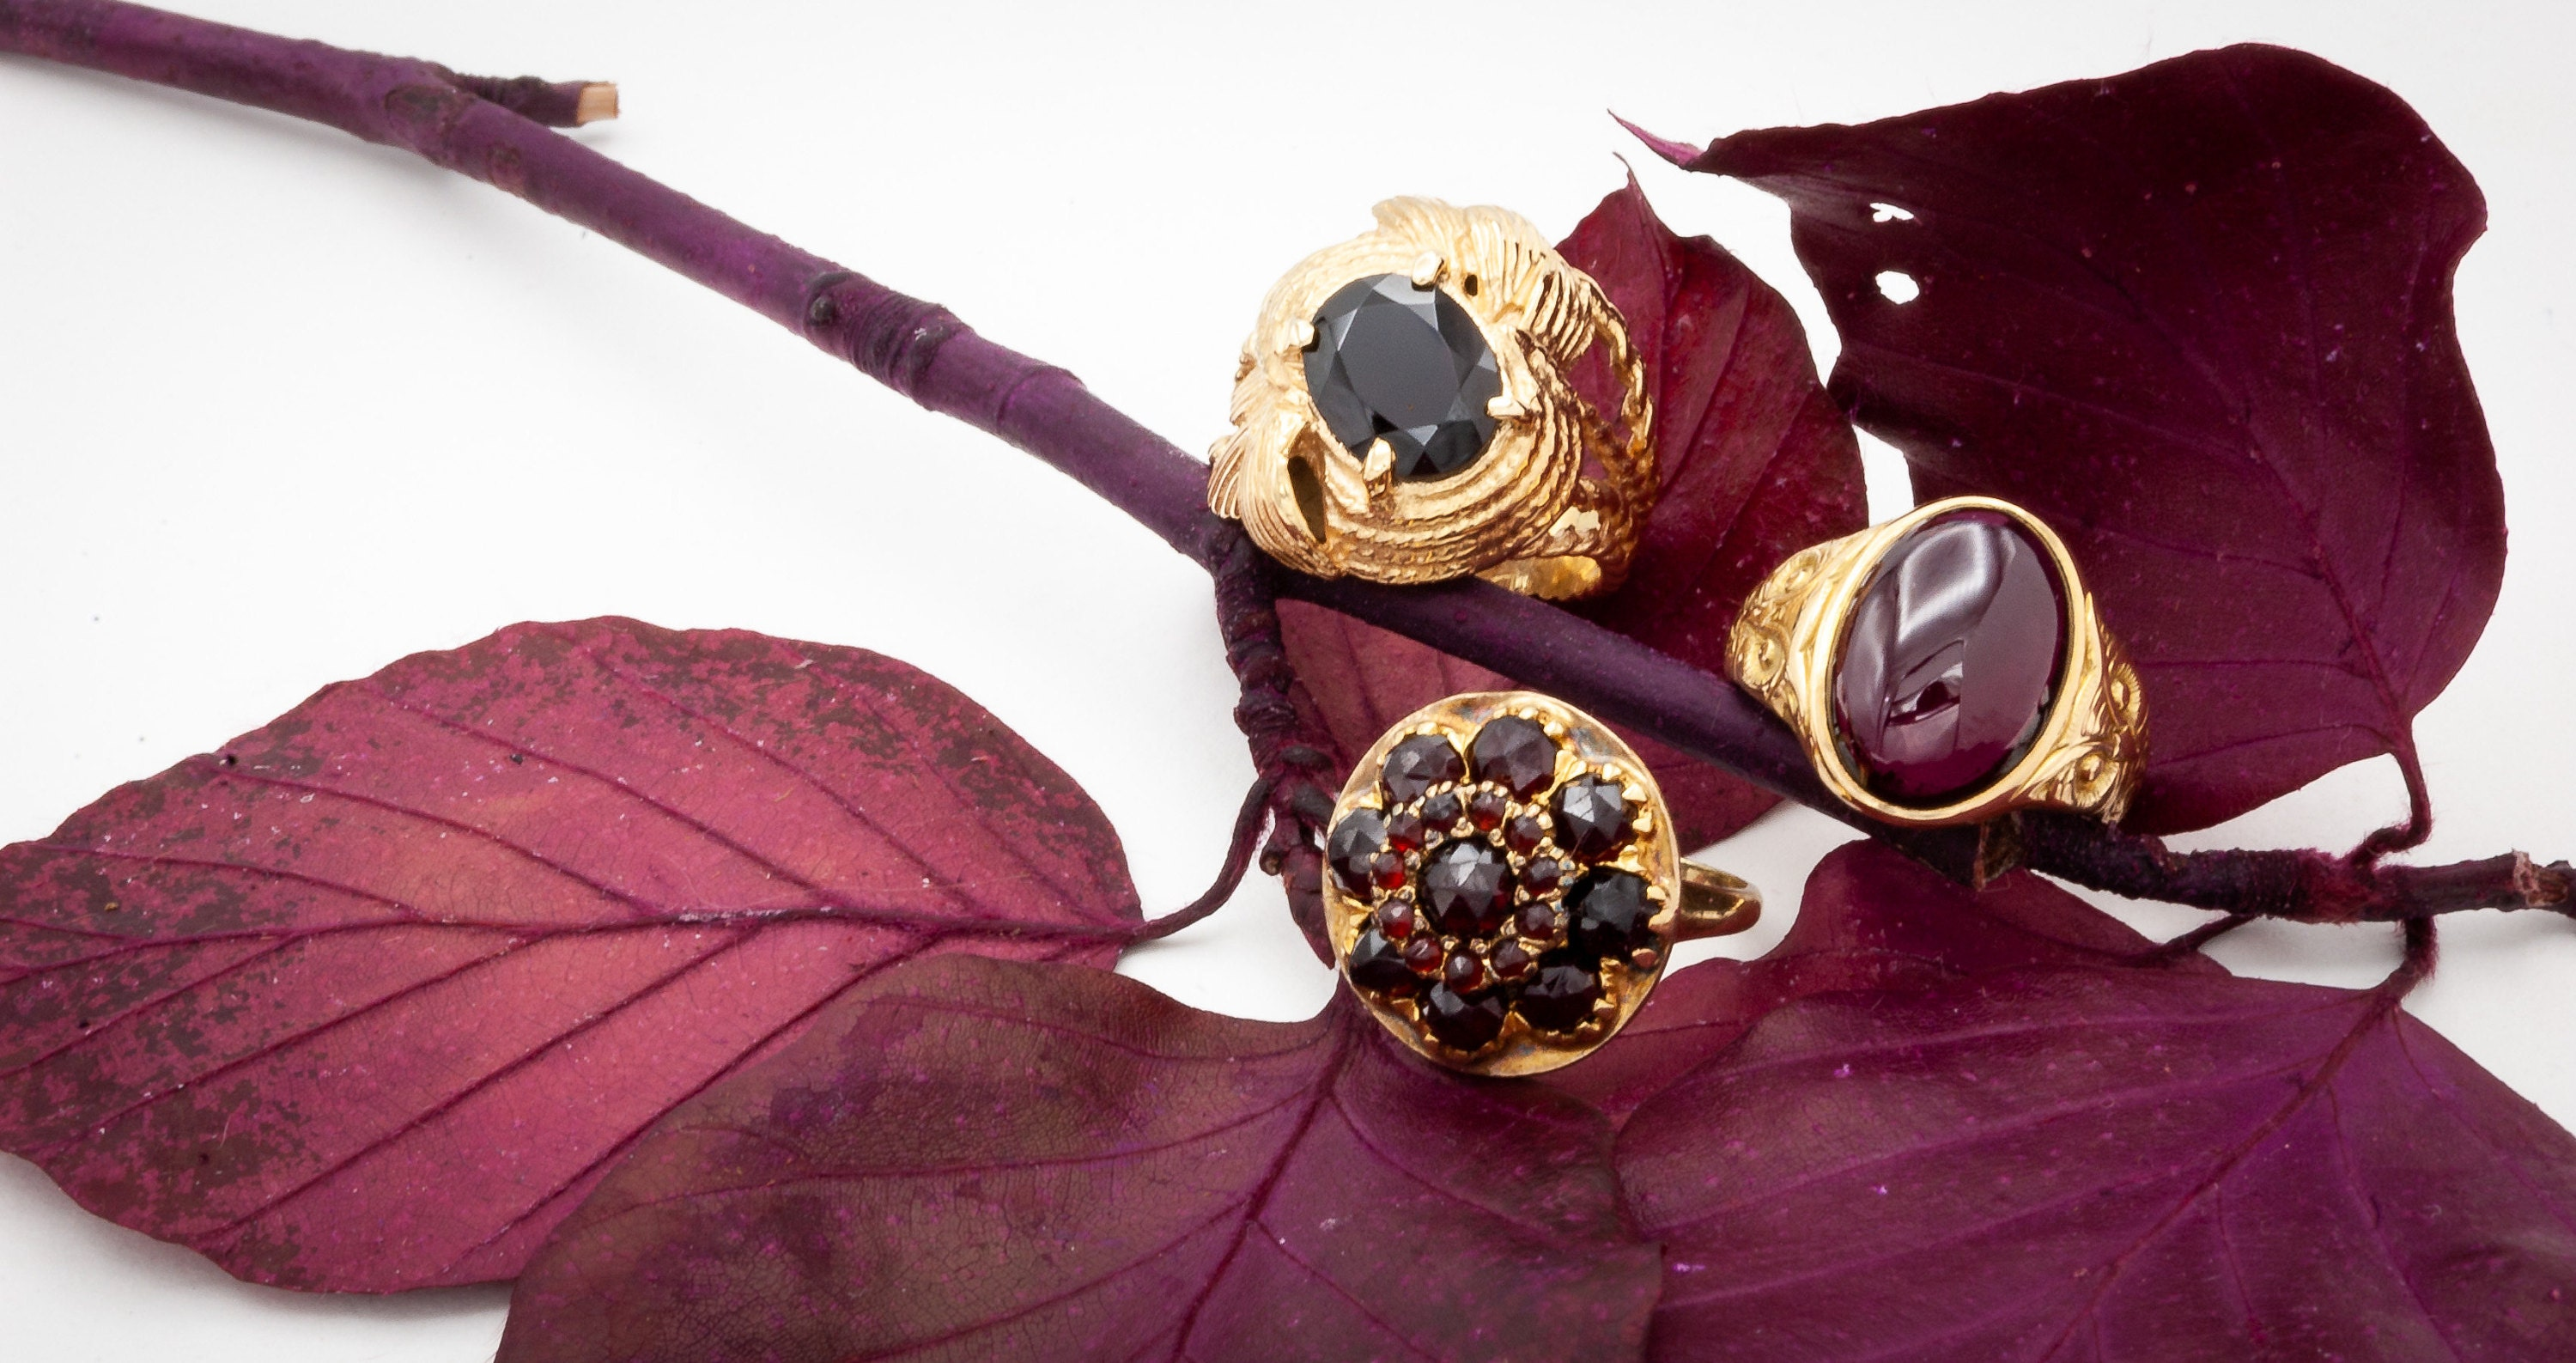 Vintage Garnet Gold Rings with Cabochon and propped on red wine colored leaves and branch